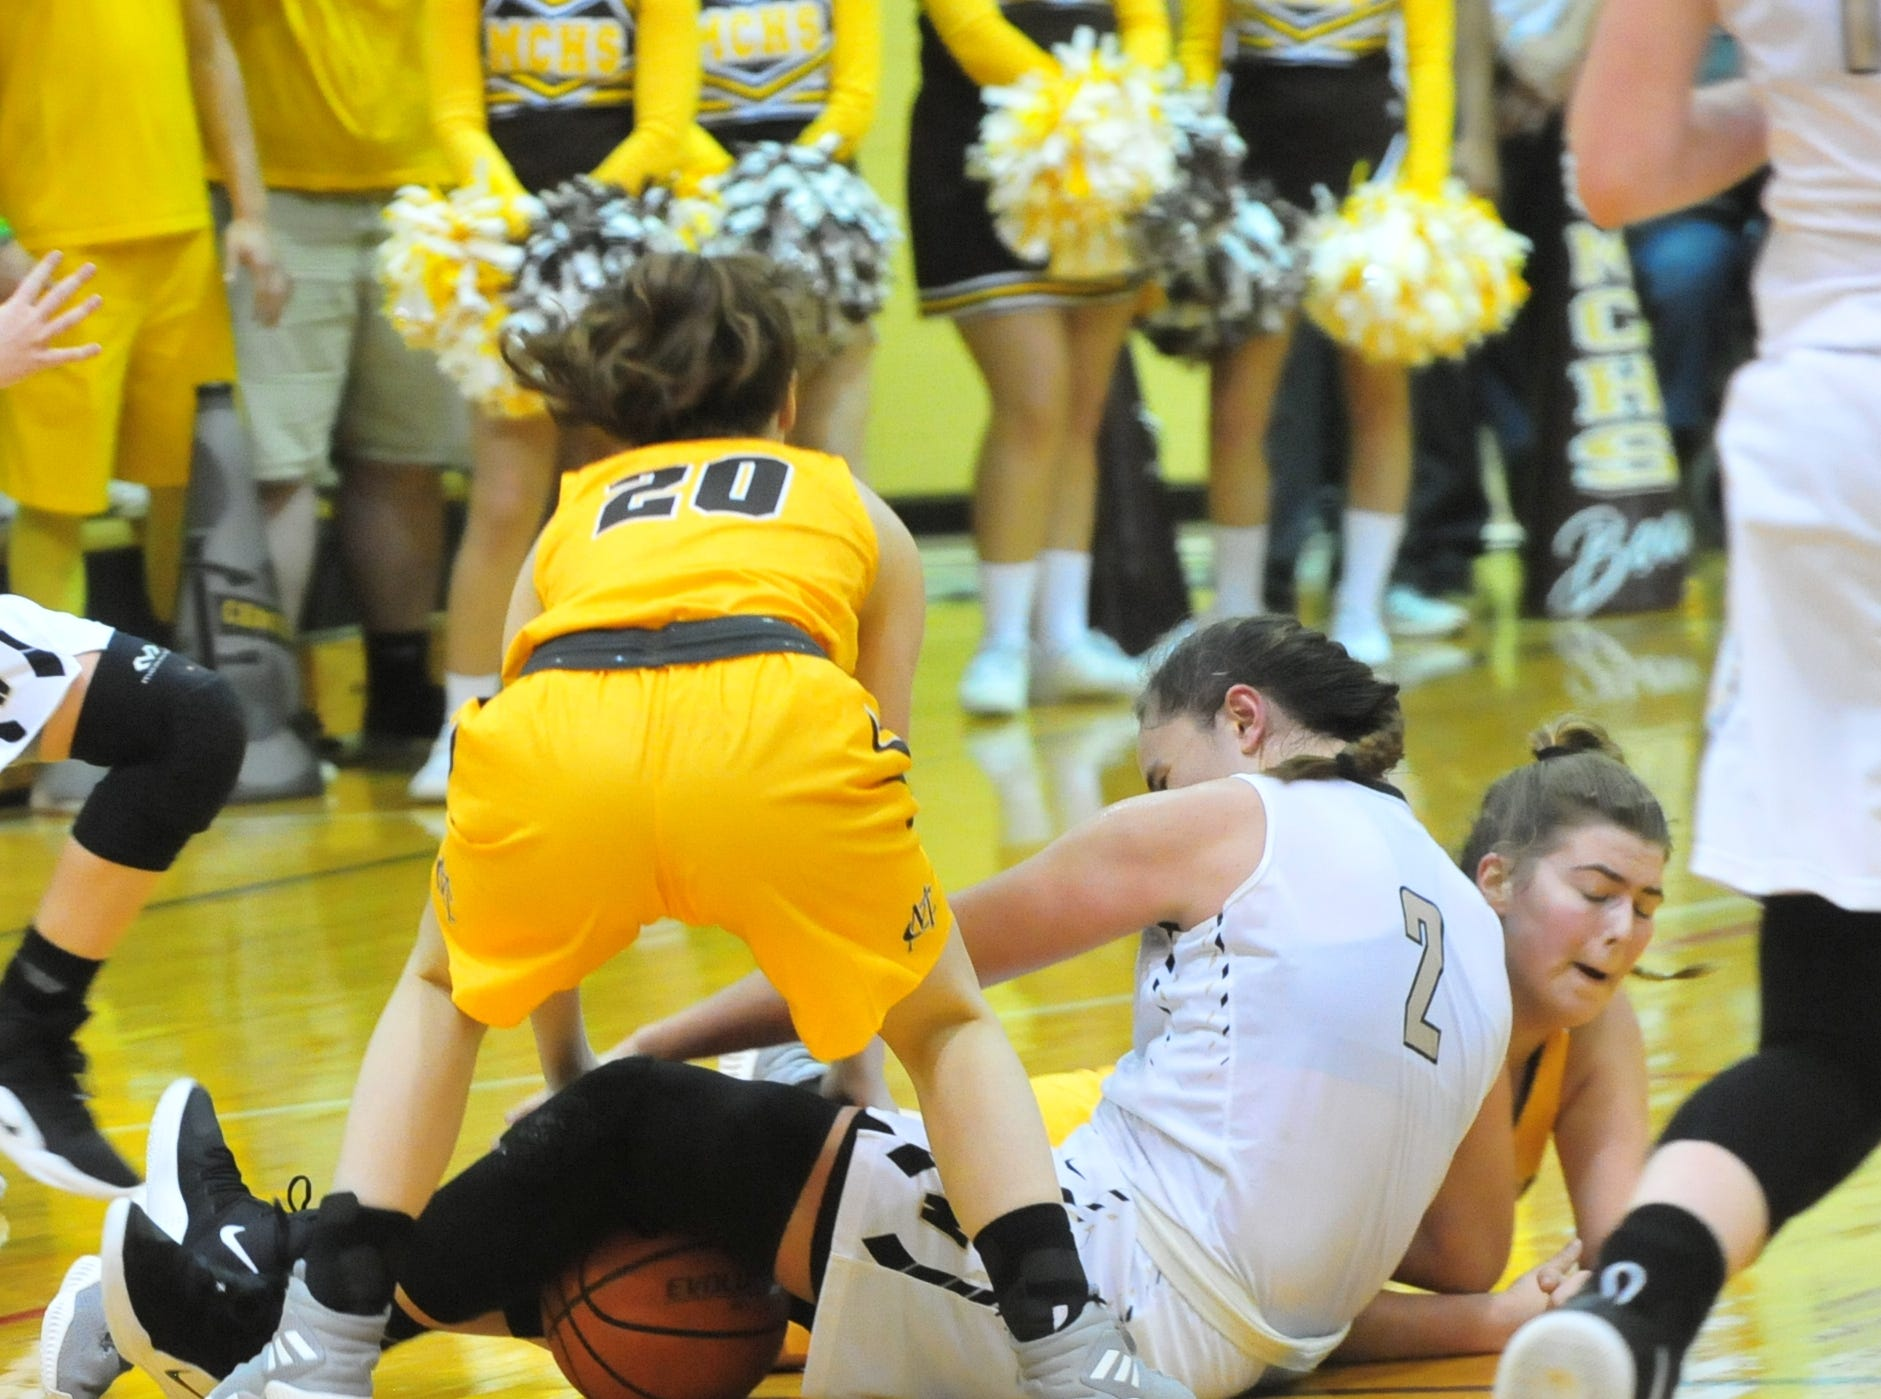 Winchester's Maddie Lawrence (2) battles a pair of Monroe Central players for a loose ball during Winchester's 64-39 girls basketball win over Monroe Central Saturday, Dec. 1, 2018 at Winchester Fieldhouse.